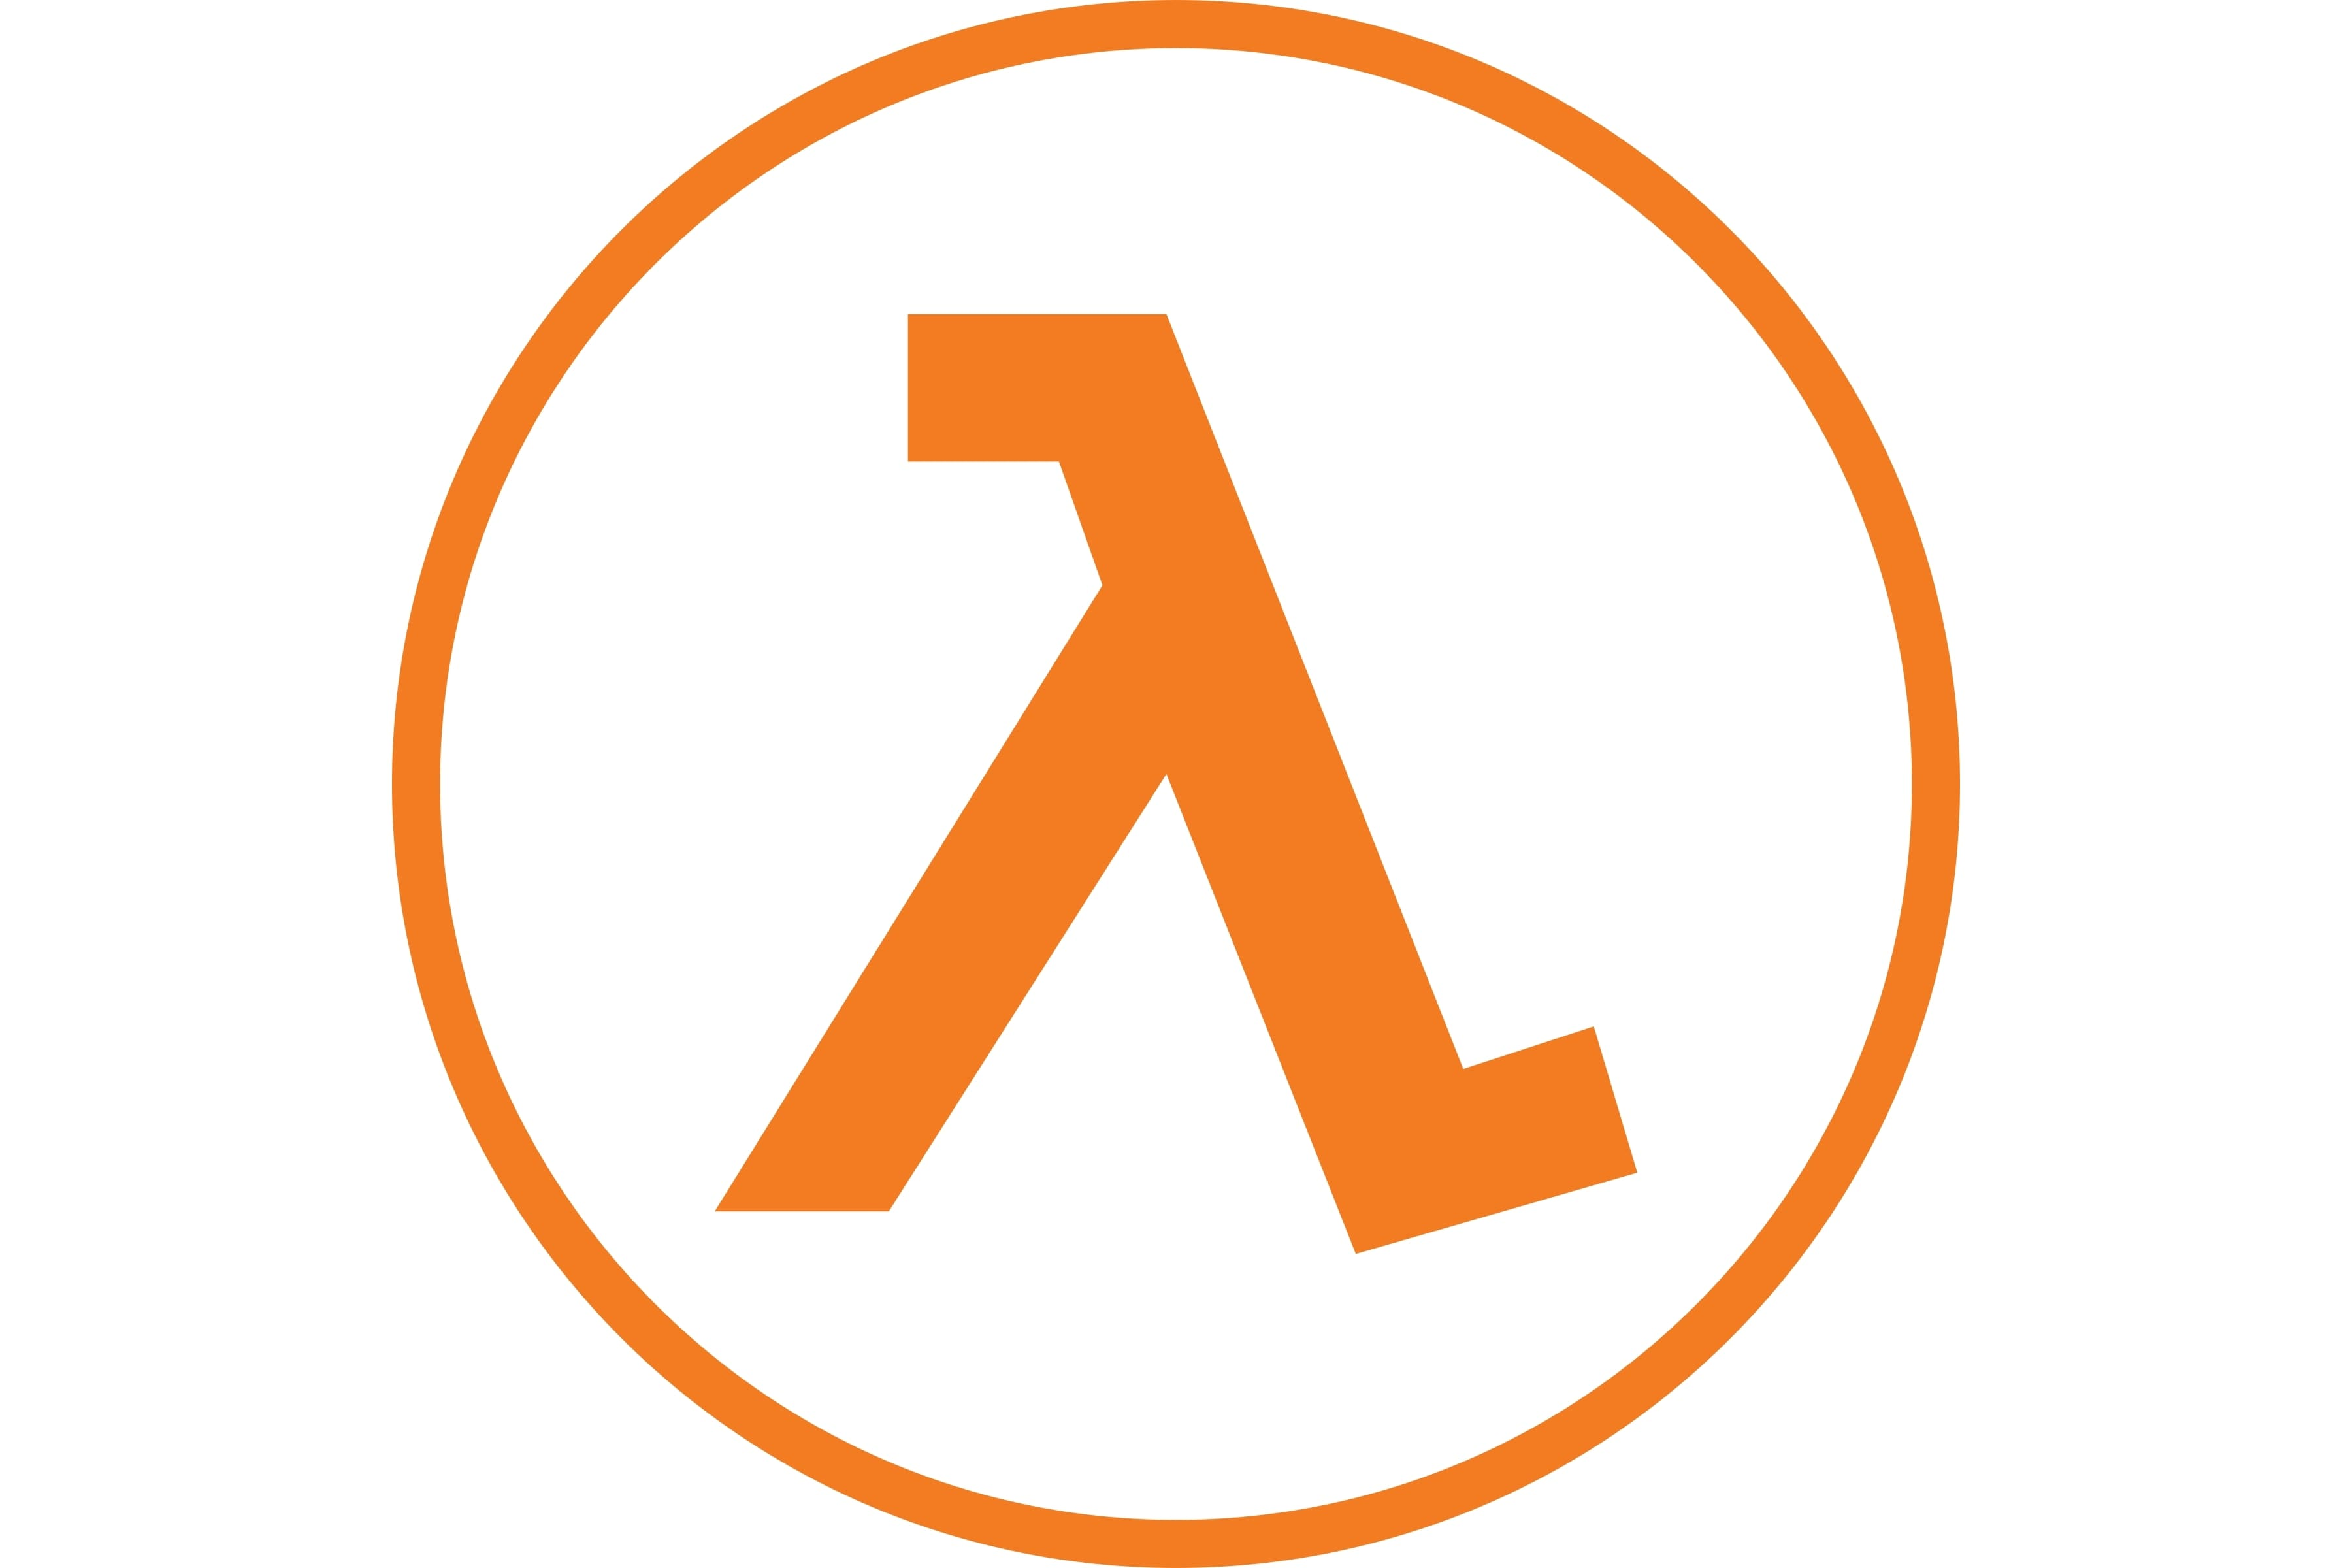 Half-Life logo and symbol, meaning, history, PNG